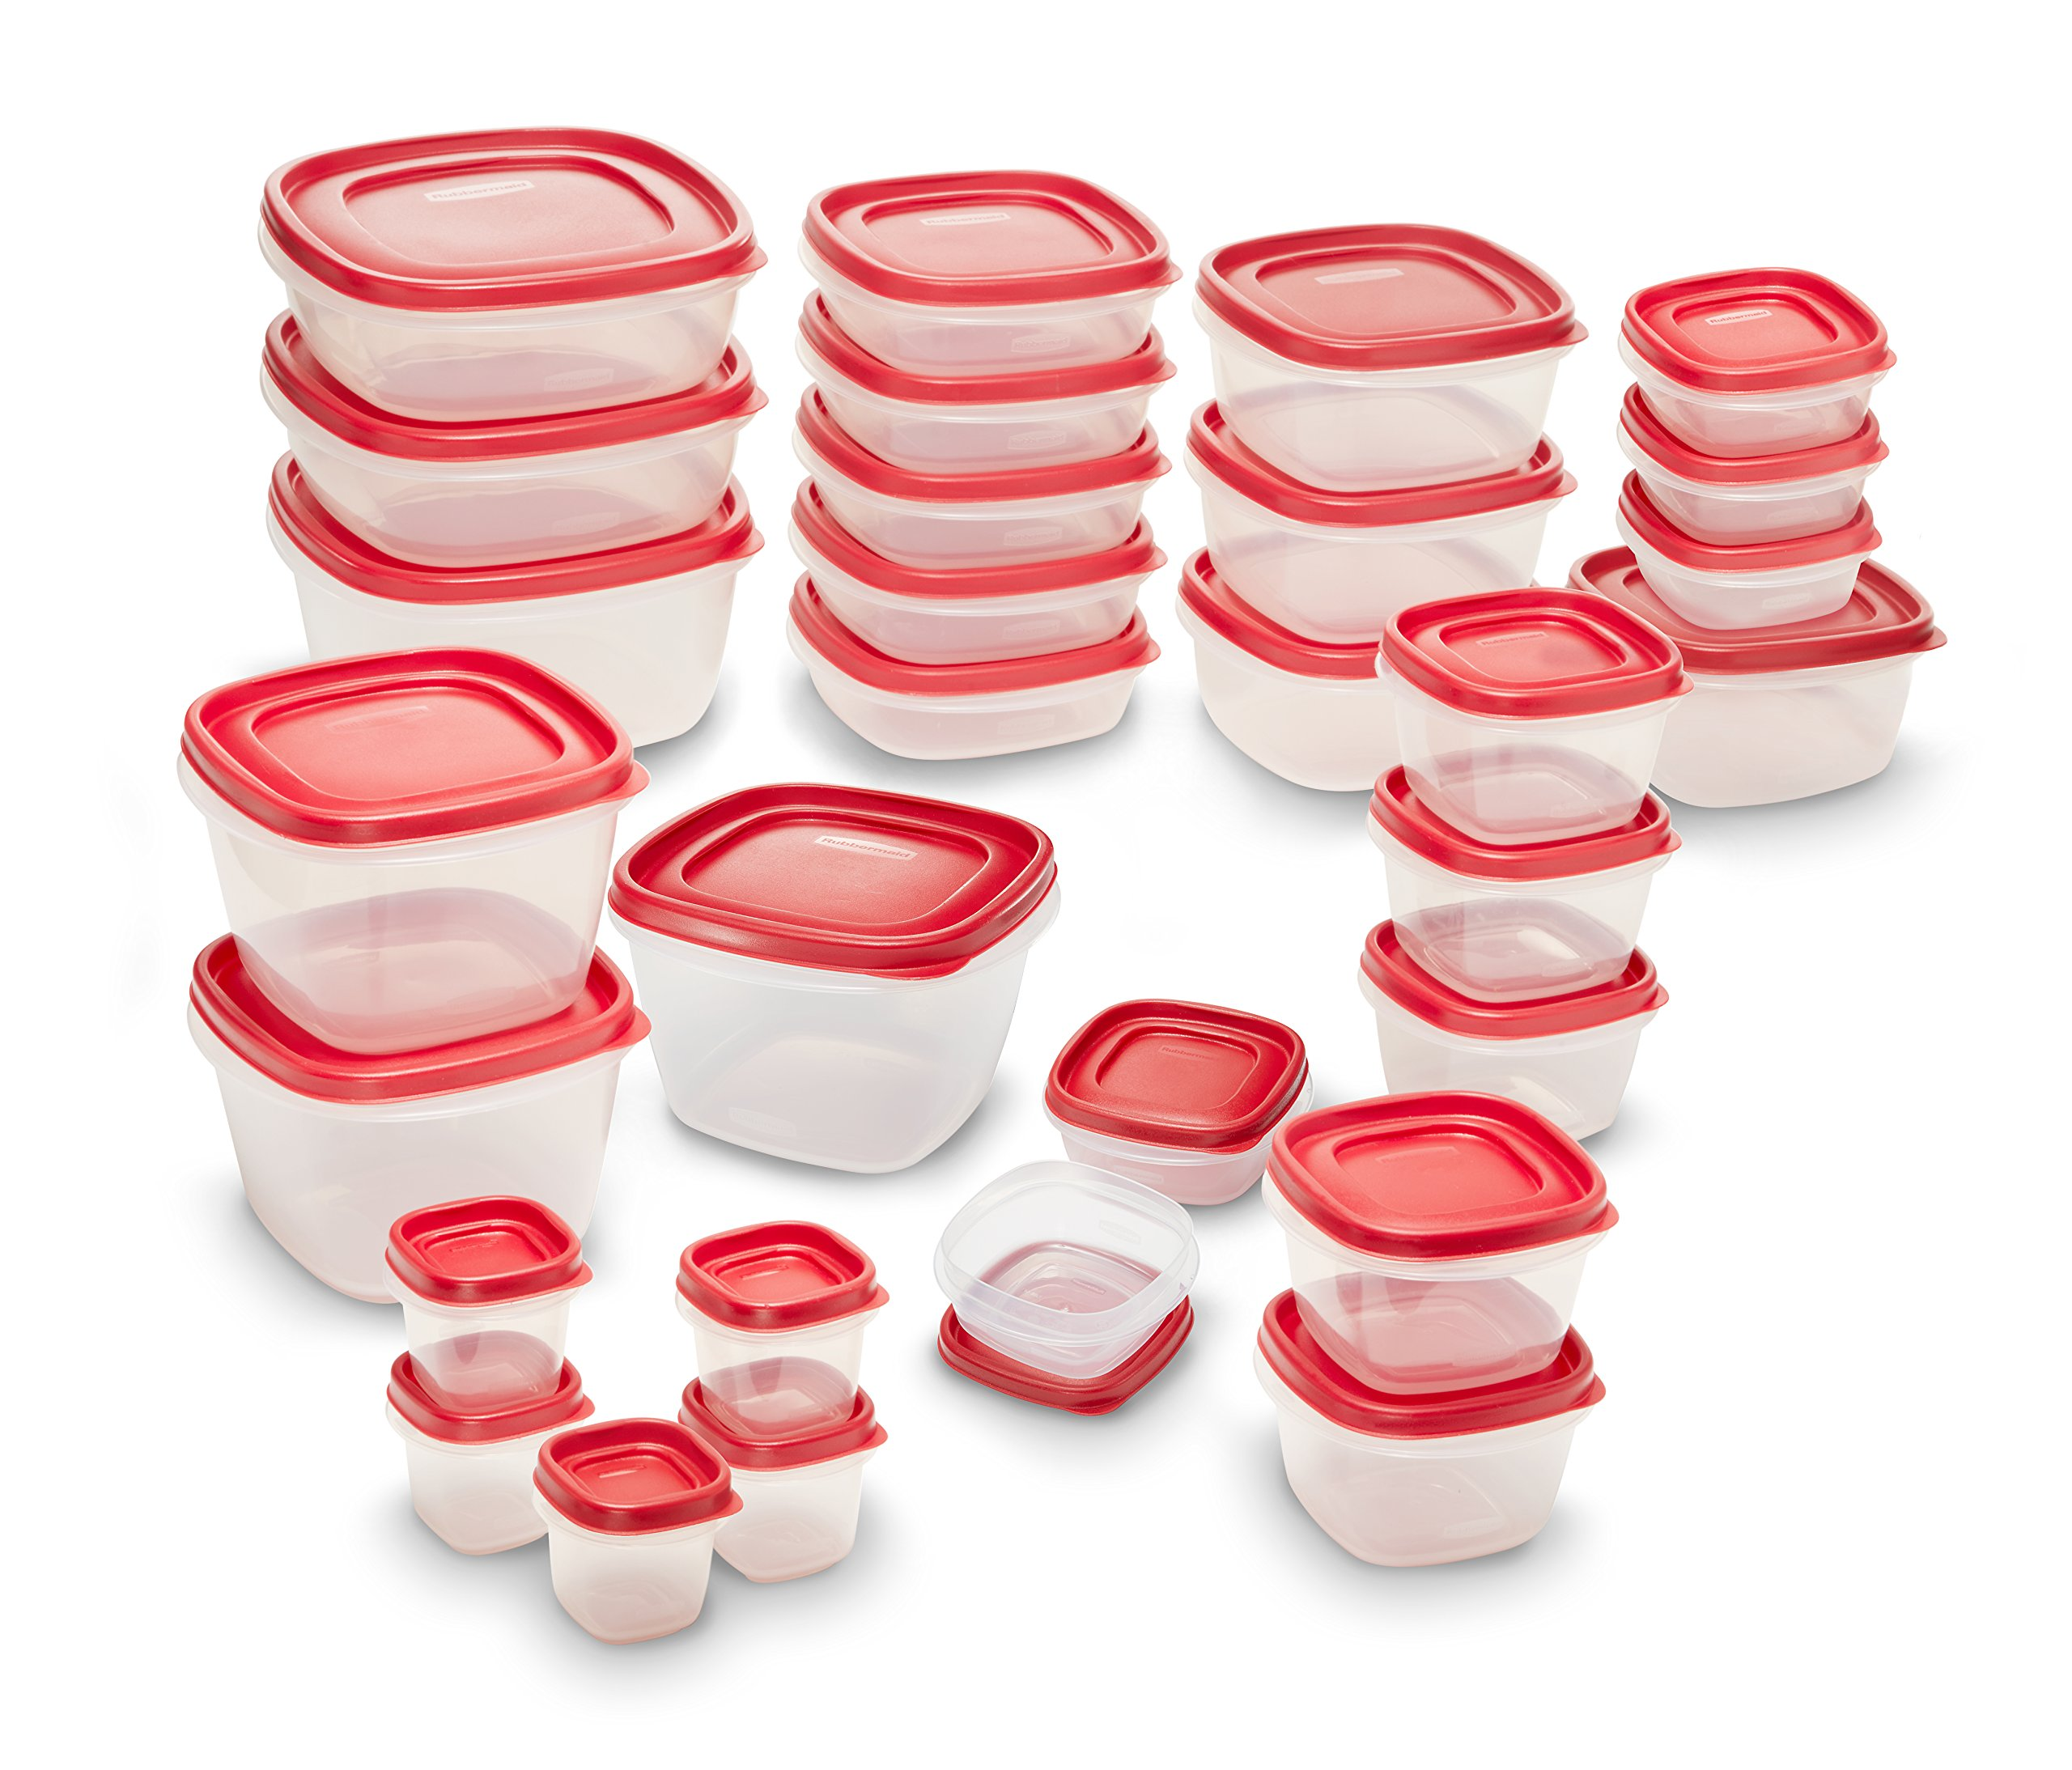 Rubbermaid Easy Find Lids Food Storage Containers, Racer Red, 60-Piece Set 2005627 by Rubbermaid